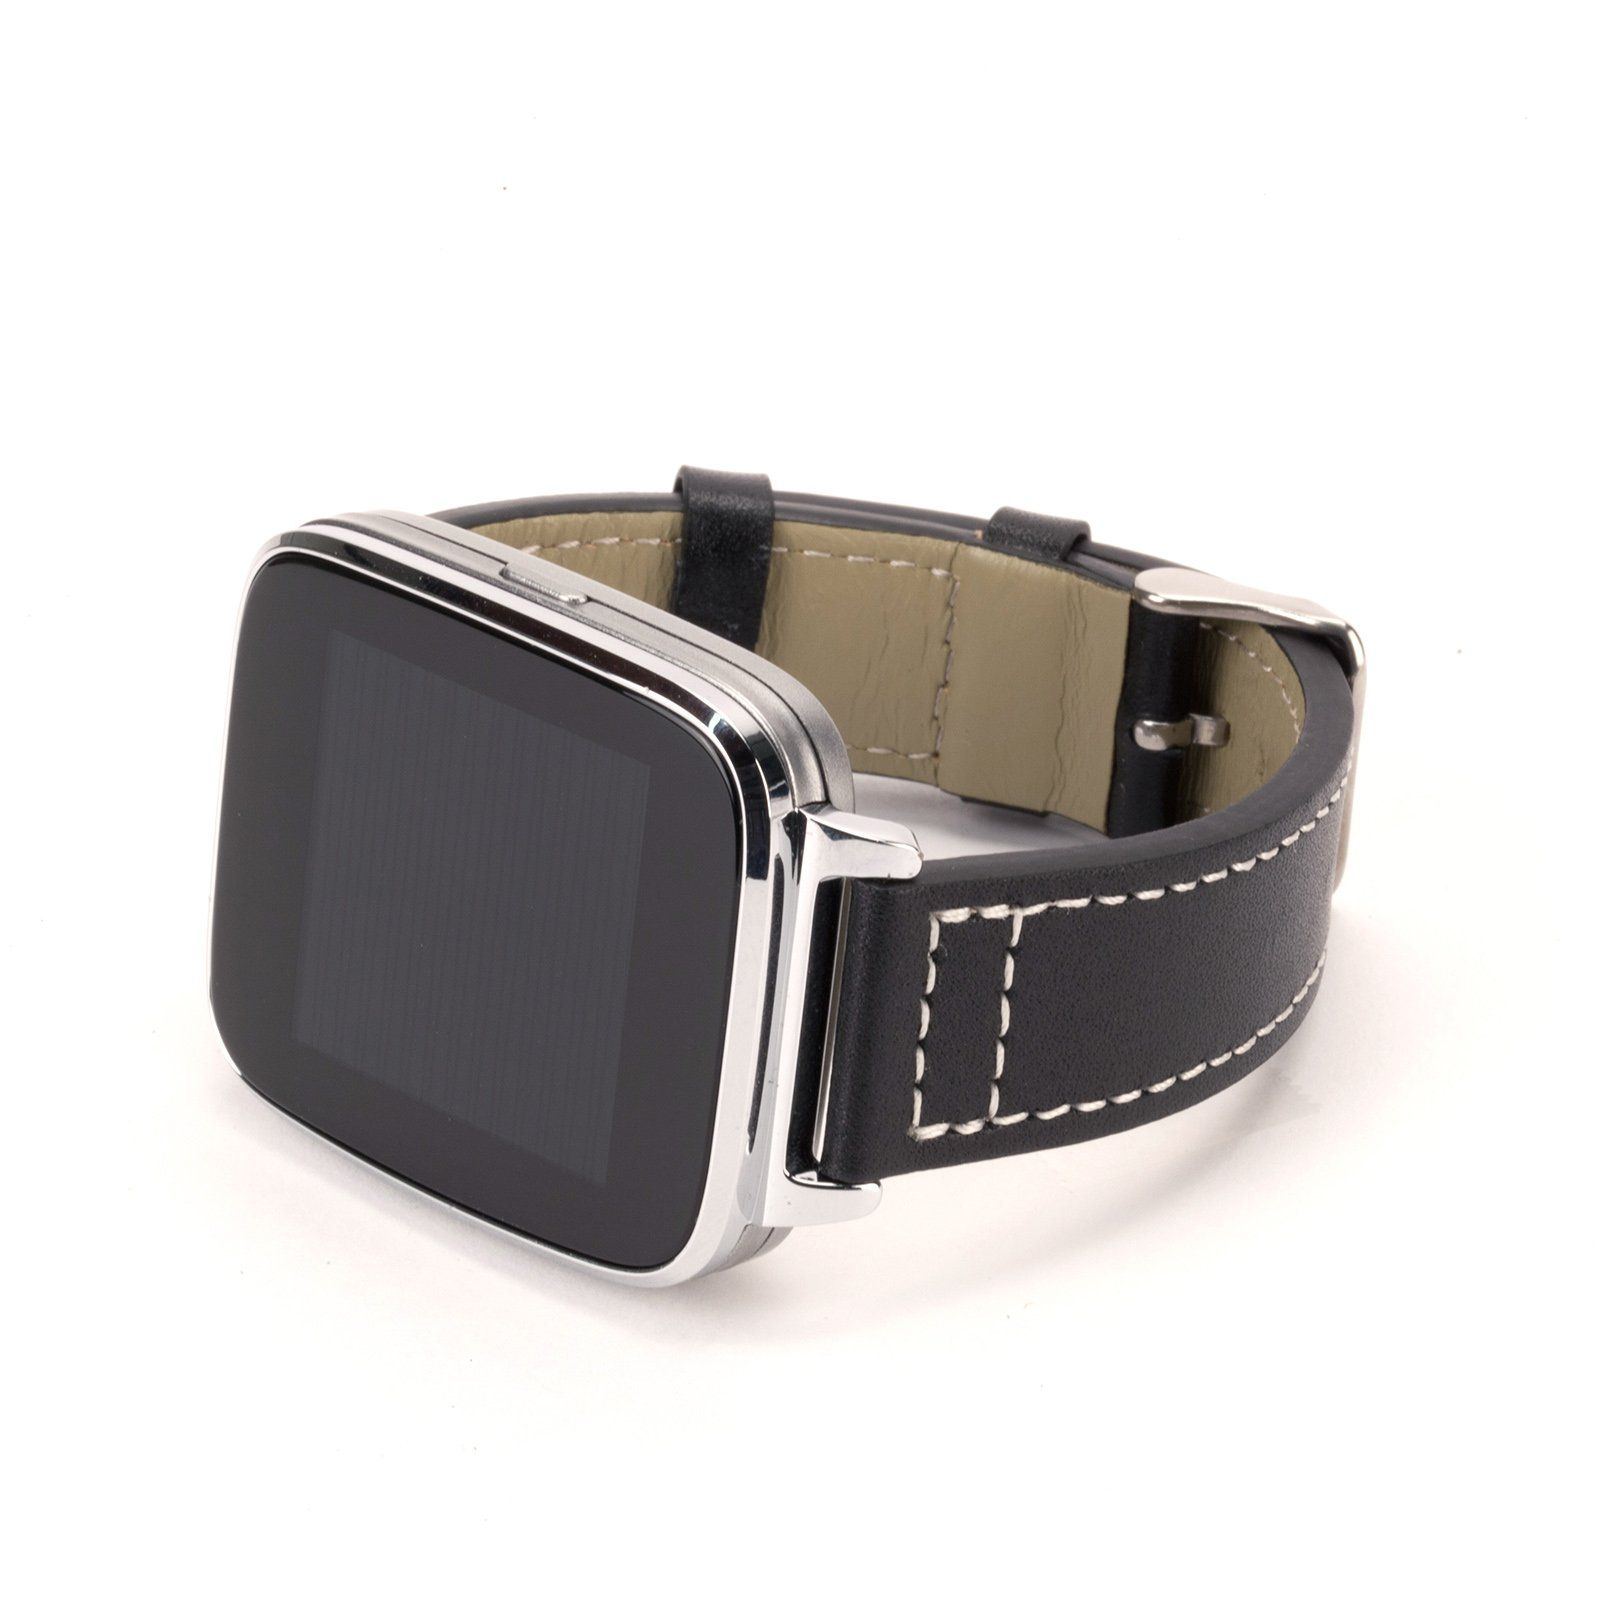 Bit Full Function Smart Watch for Apple/Android devices